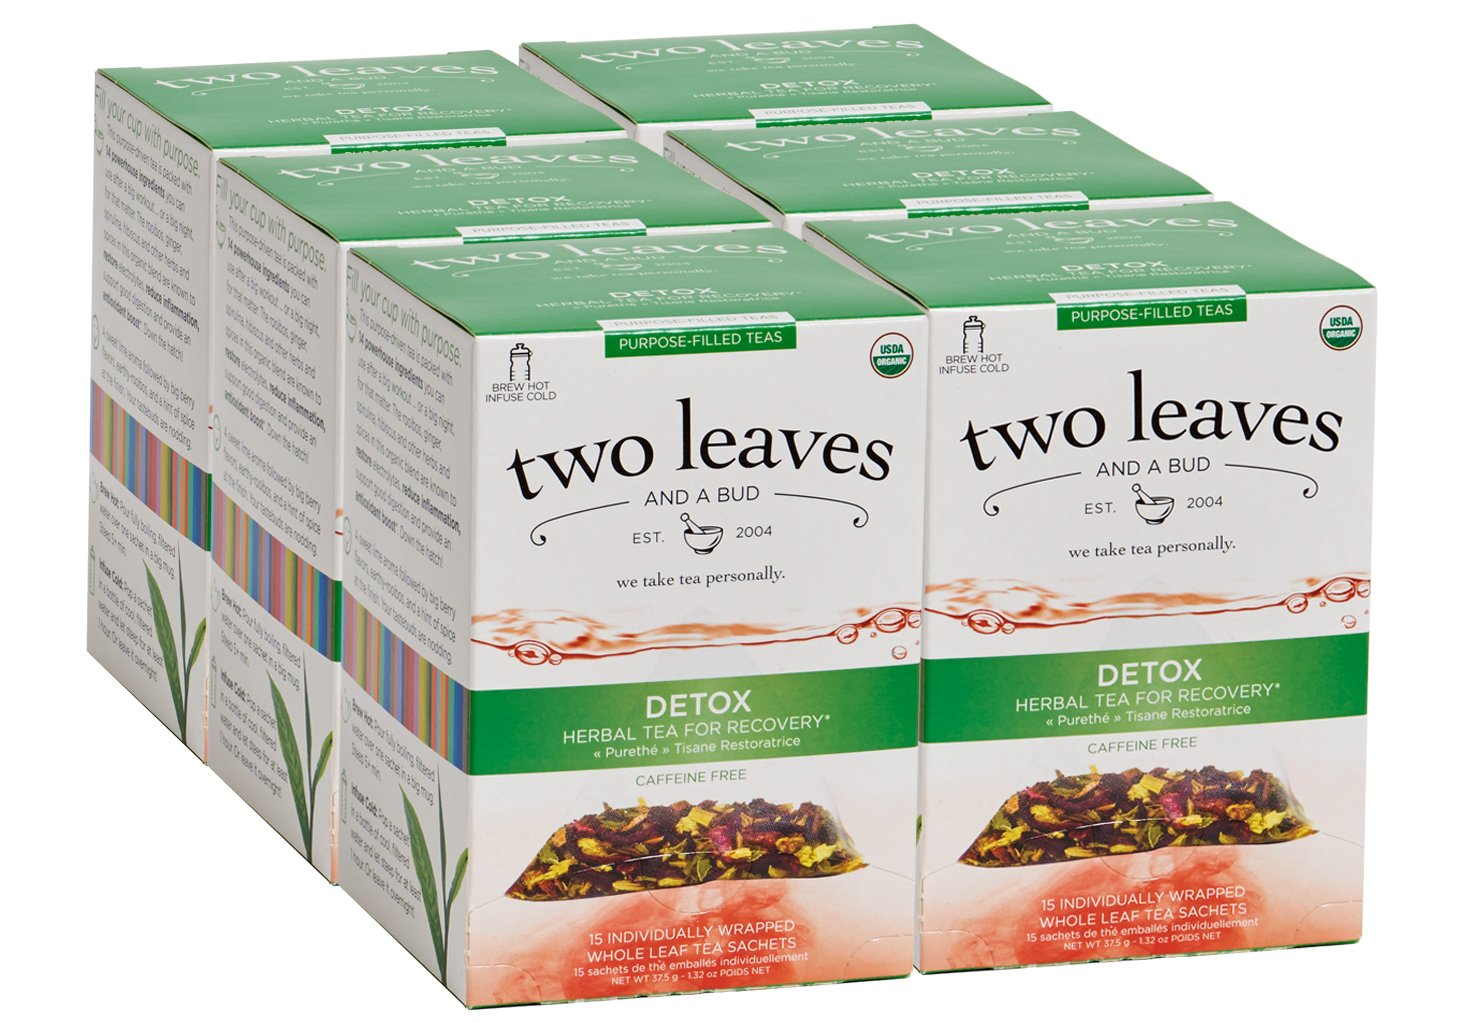 Two Leaves and a Bud Organic Detox Herbal Tea Bags for Recovery, 15 Count (Pack of 6) Organic Whole Leaf Herbal Tea in Pyramid Sachet Bags, Delicious Hot or Iced with Milk or Sugar or Honey or Plain